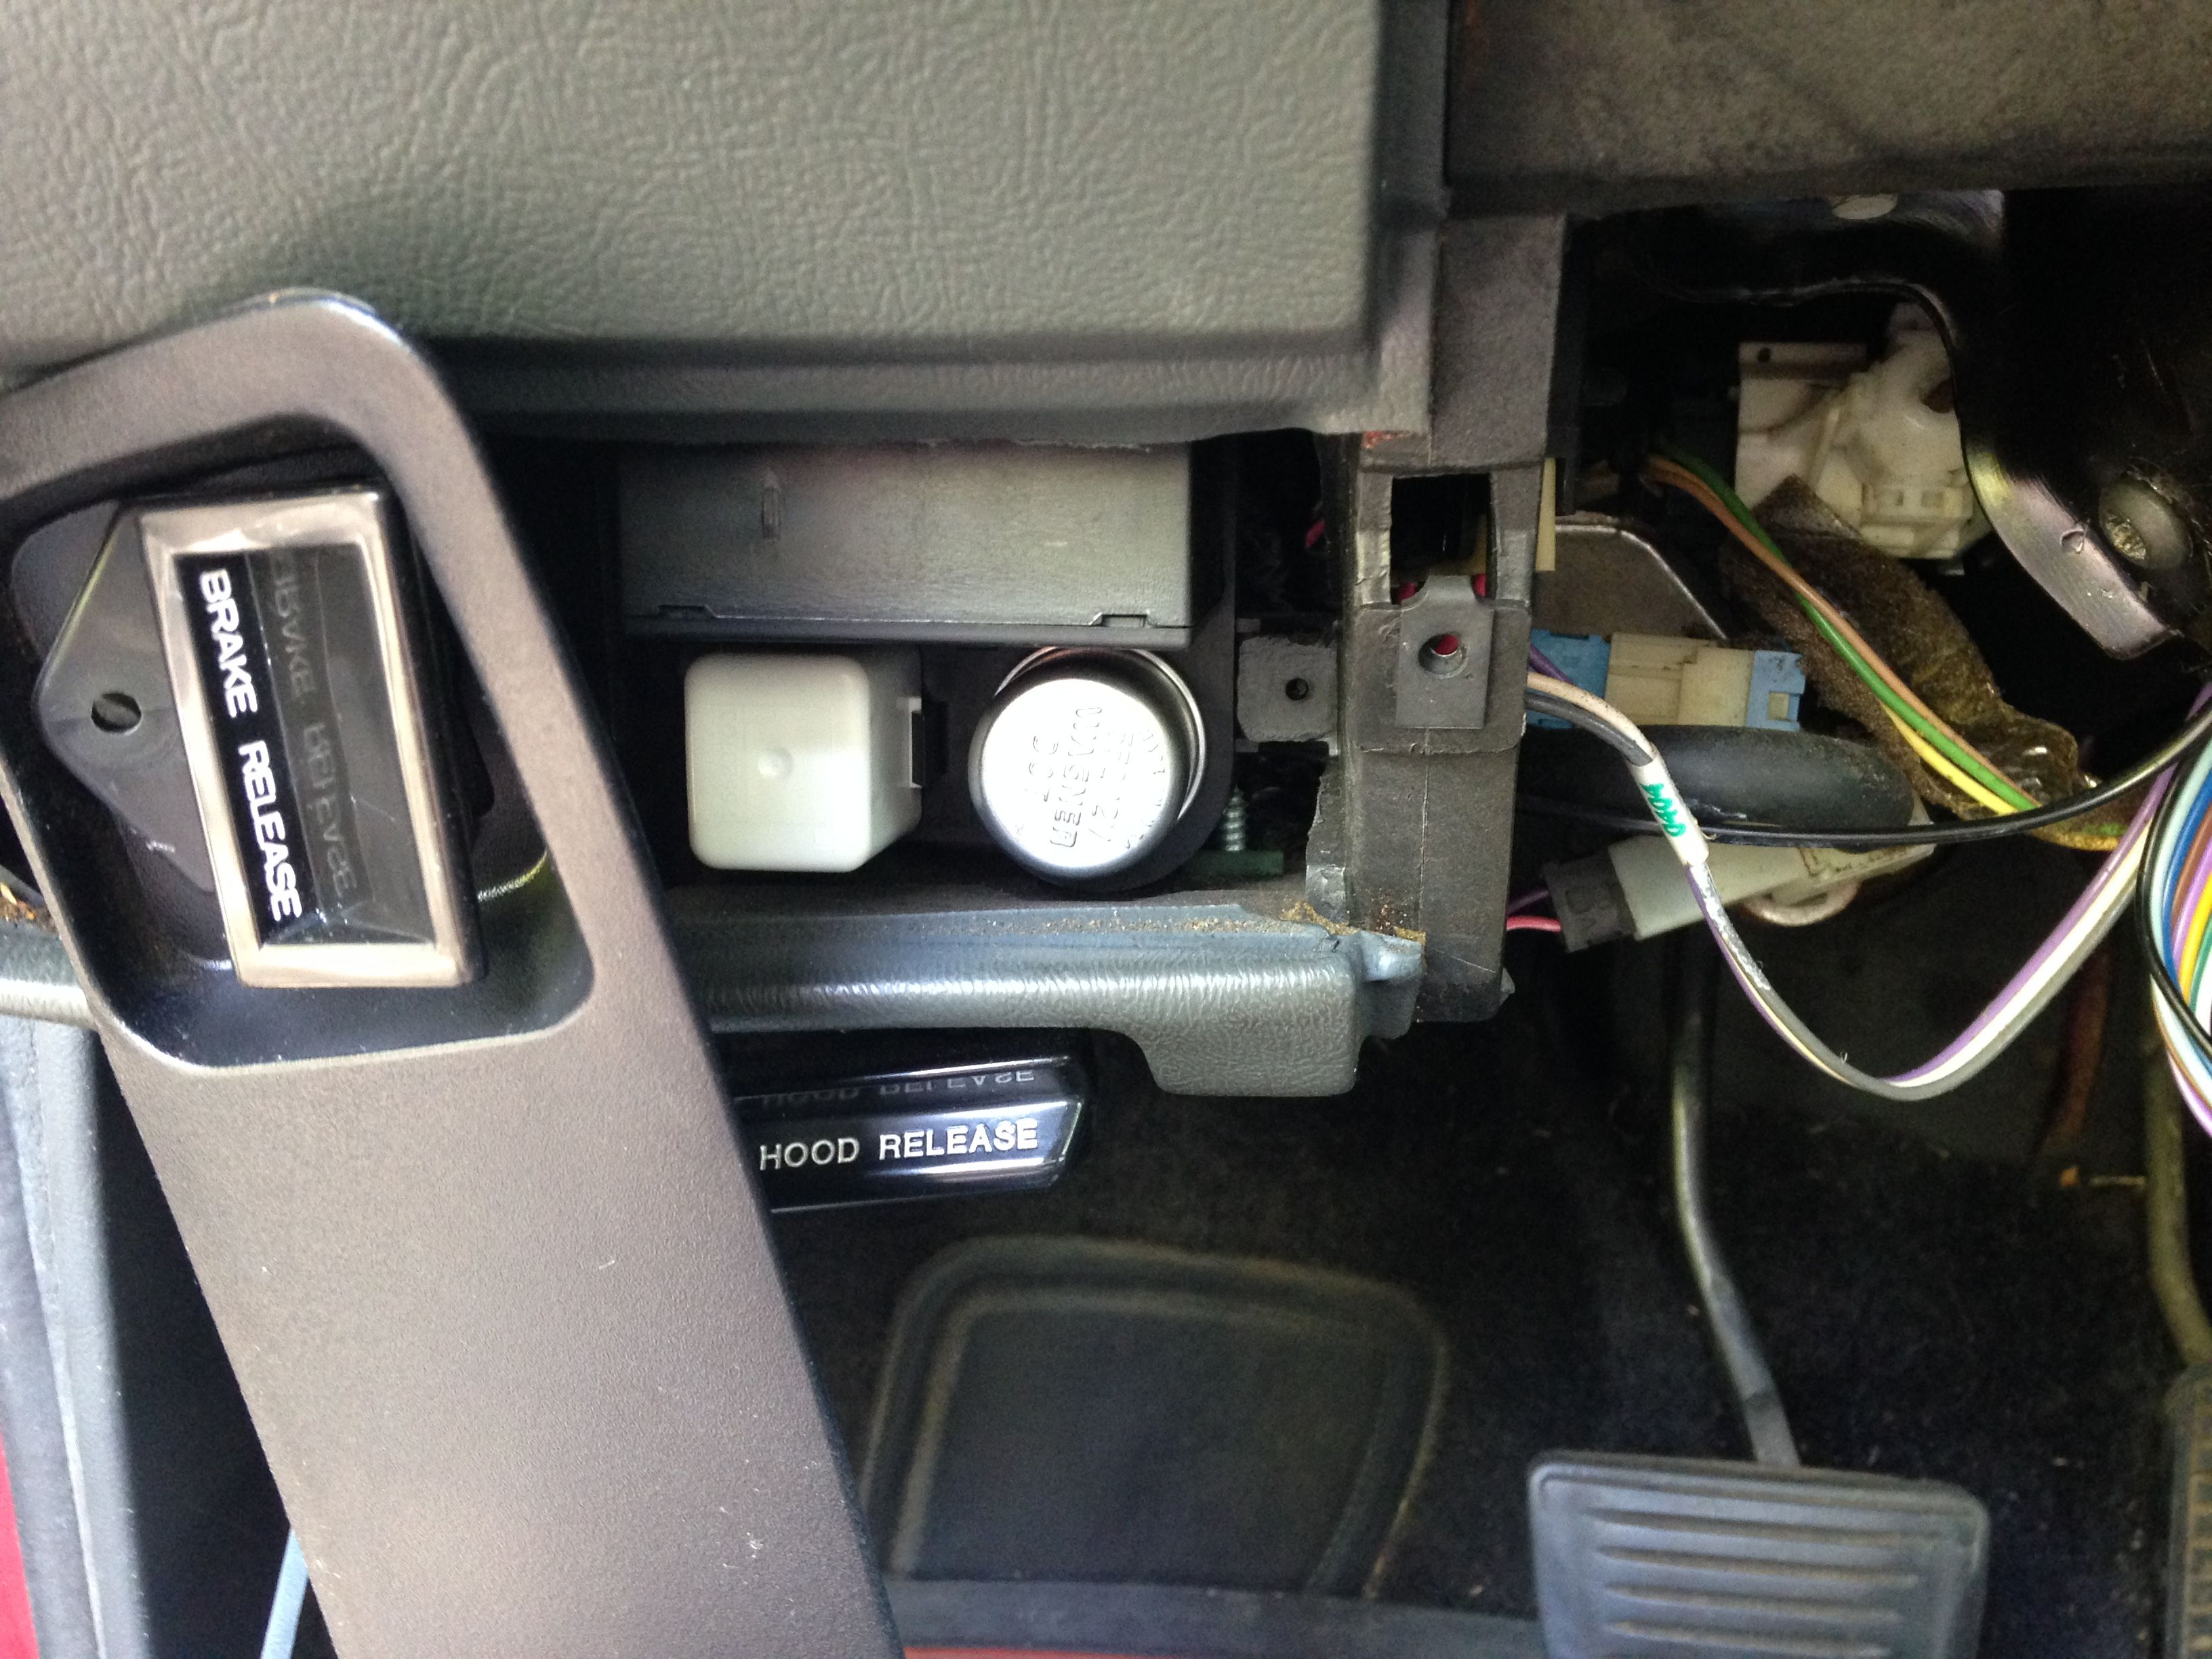 1992 Chevy S10 Blazer Horn Relay Location S10 Blazer Chevy S10 Blazer